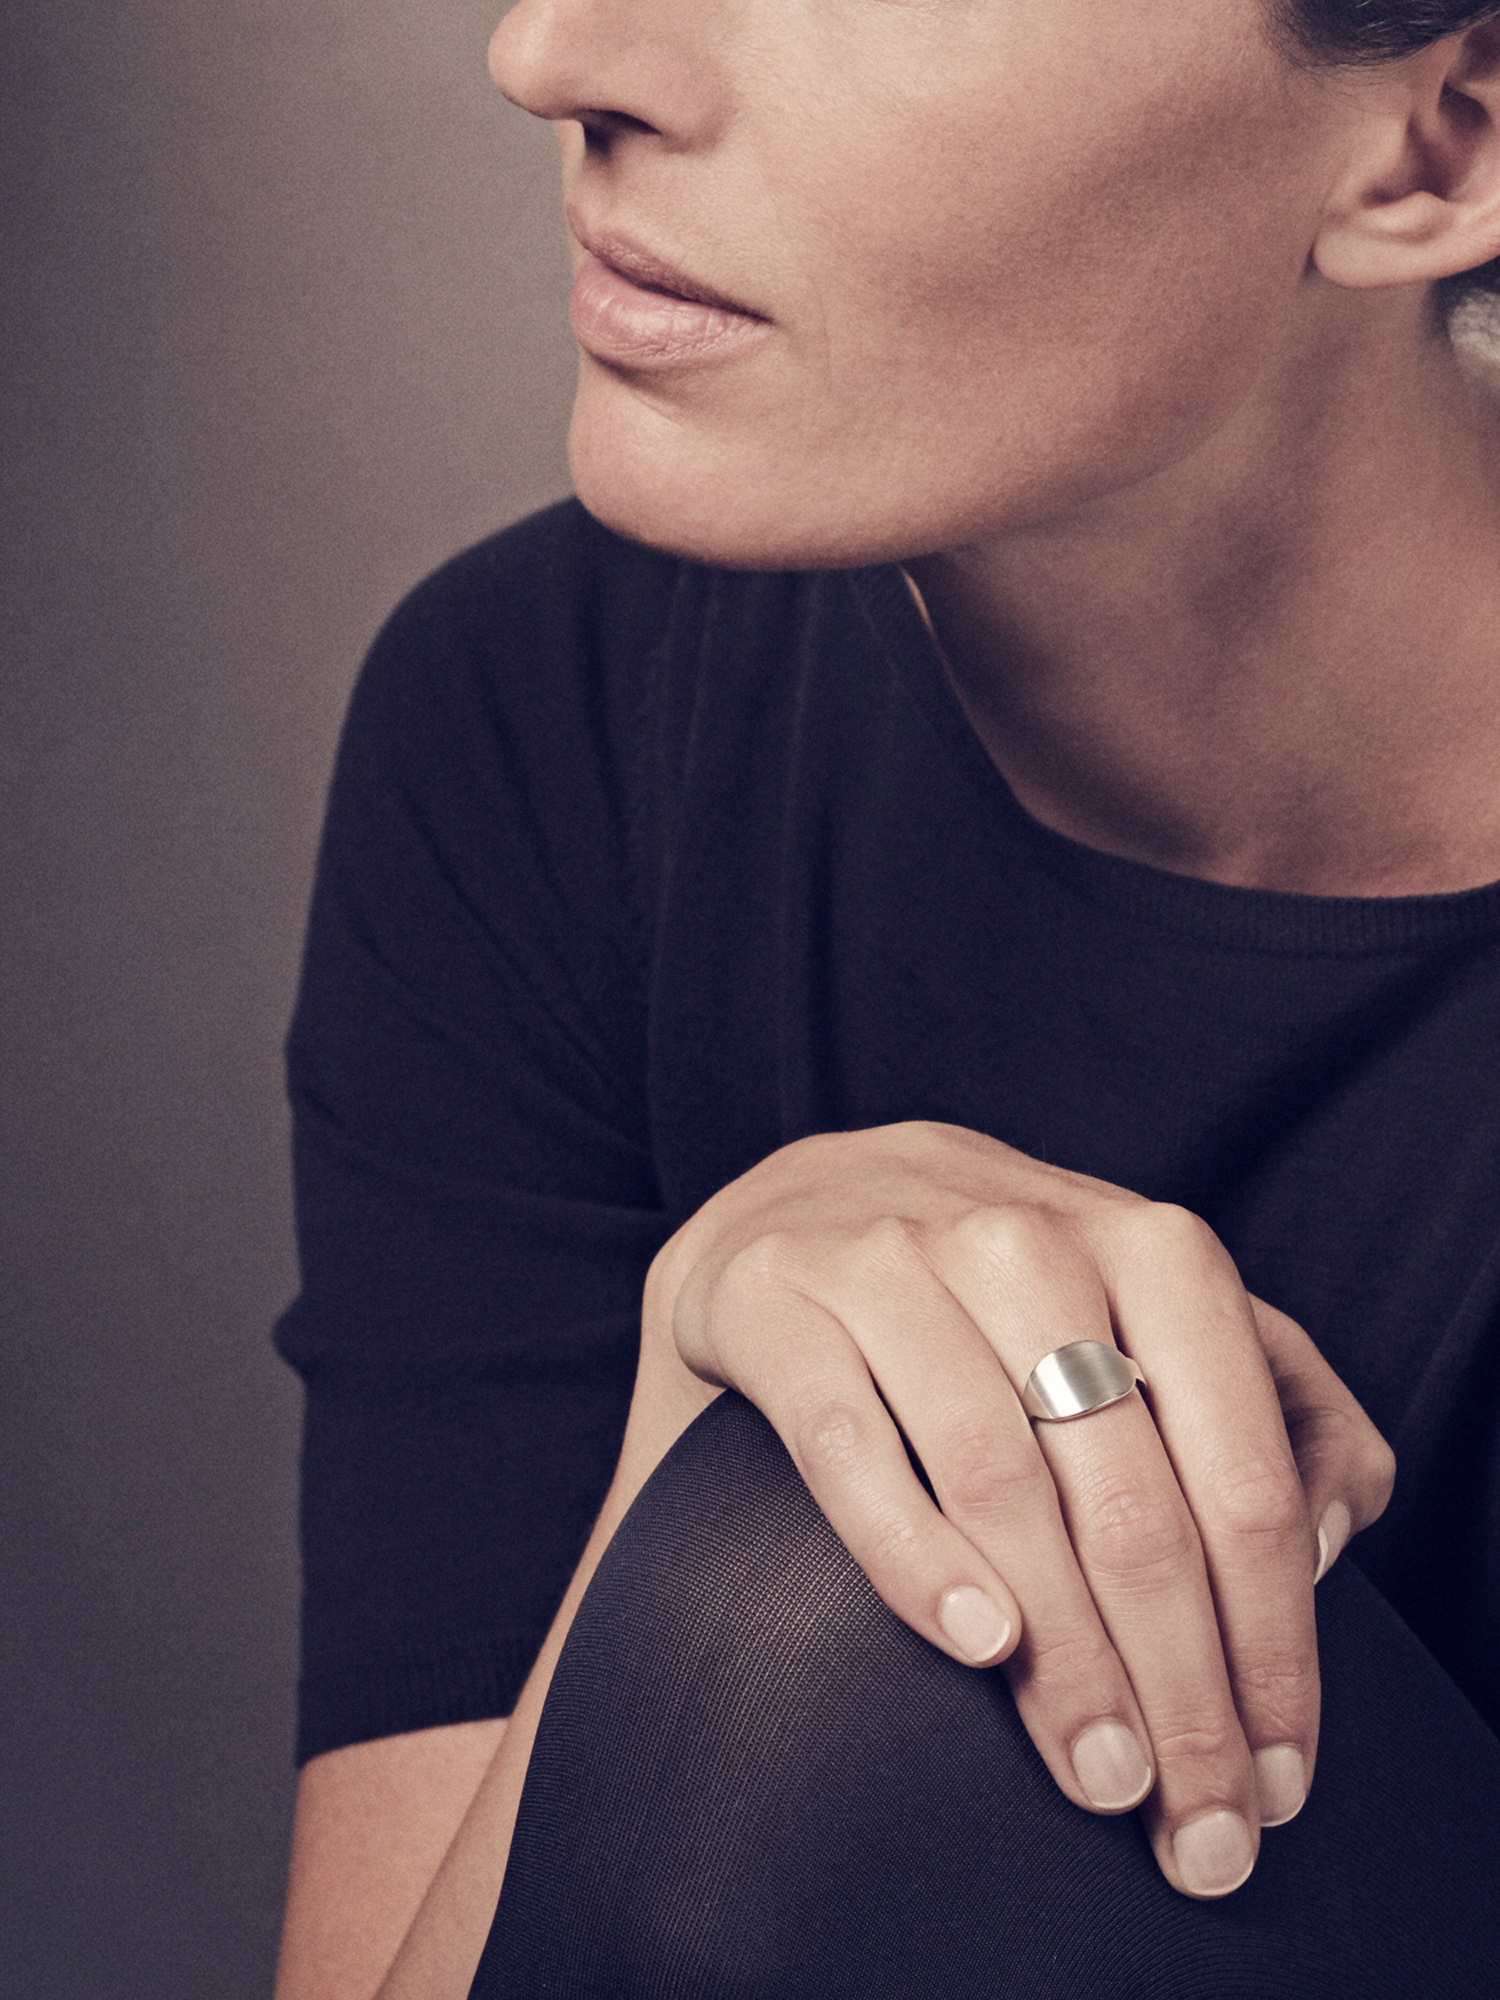 Siegelring Anda, queroval mittelgroß in 925 Silber  Signet ring Anda, horizontal oval medium big in sterling silver